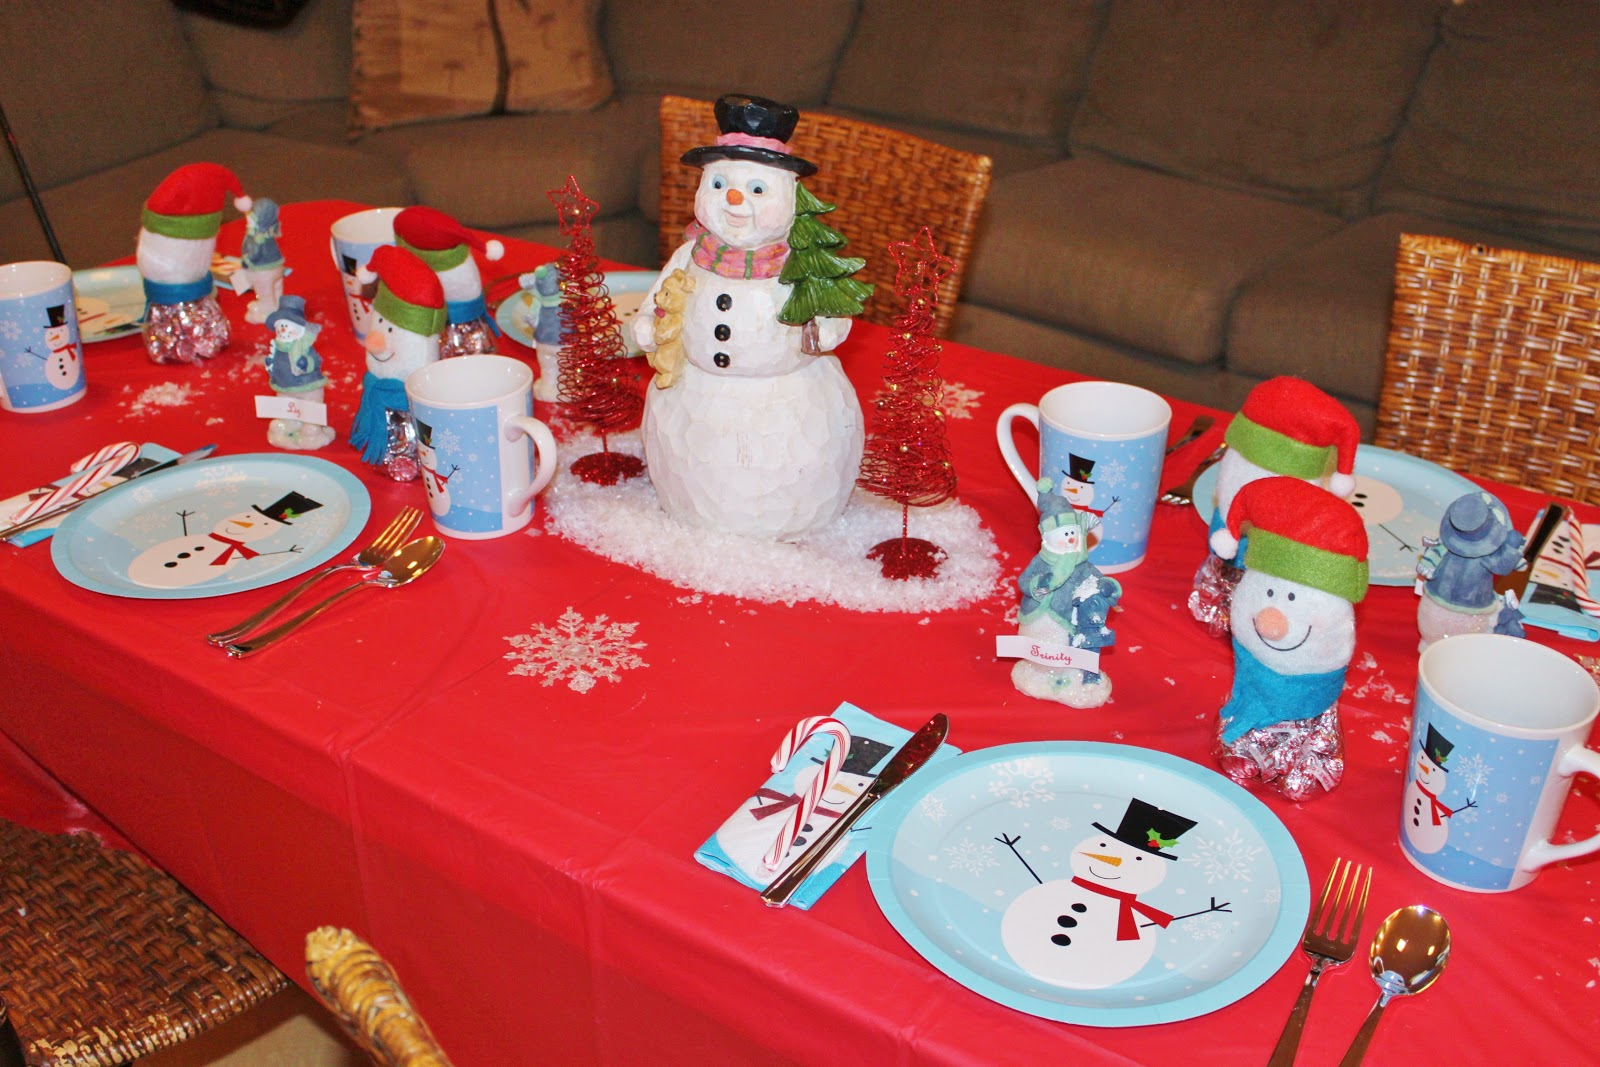 Huntington beach girl scout troop 746 snowman christmas party Christmas party table settings